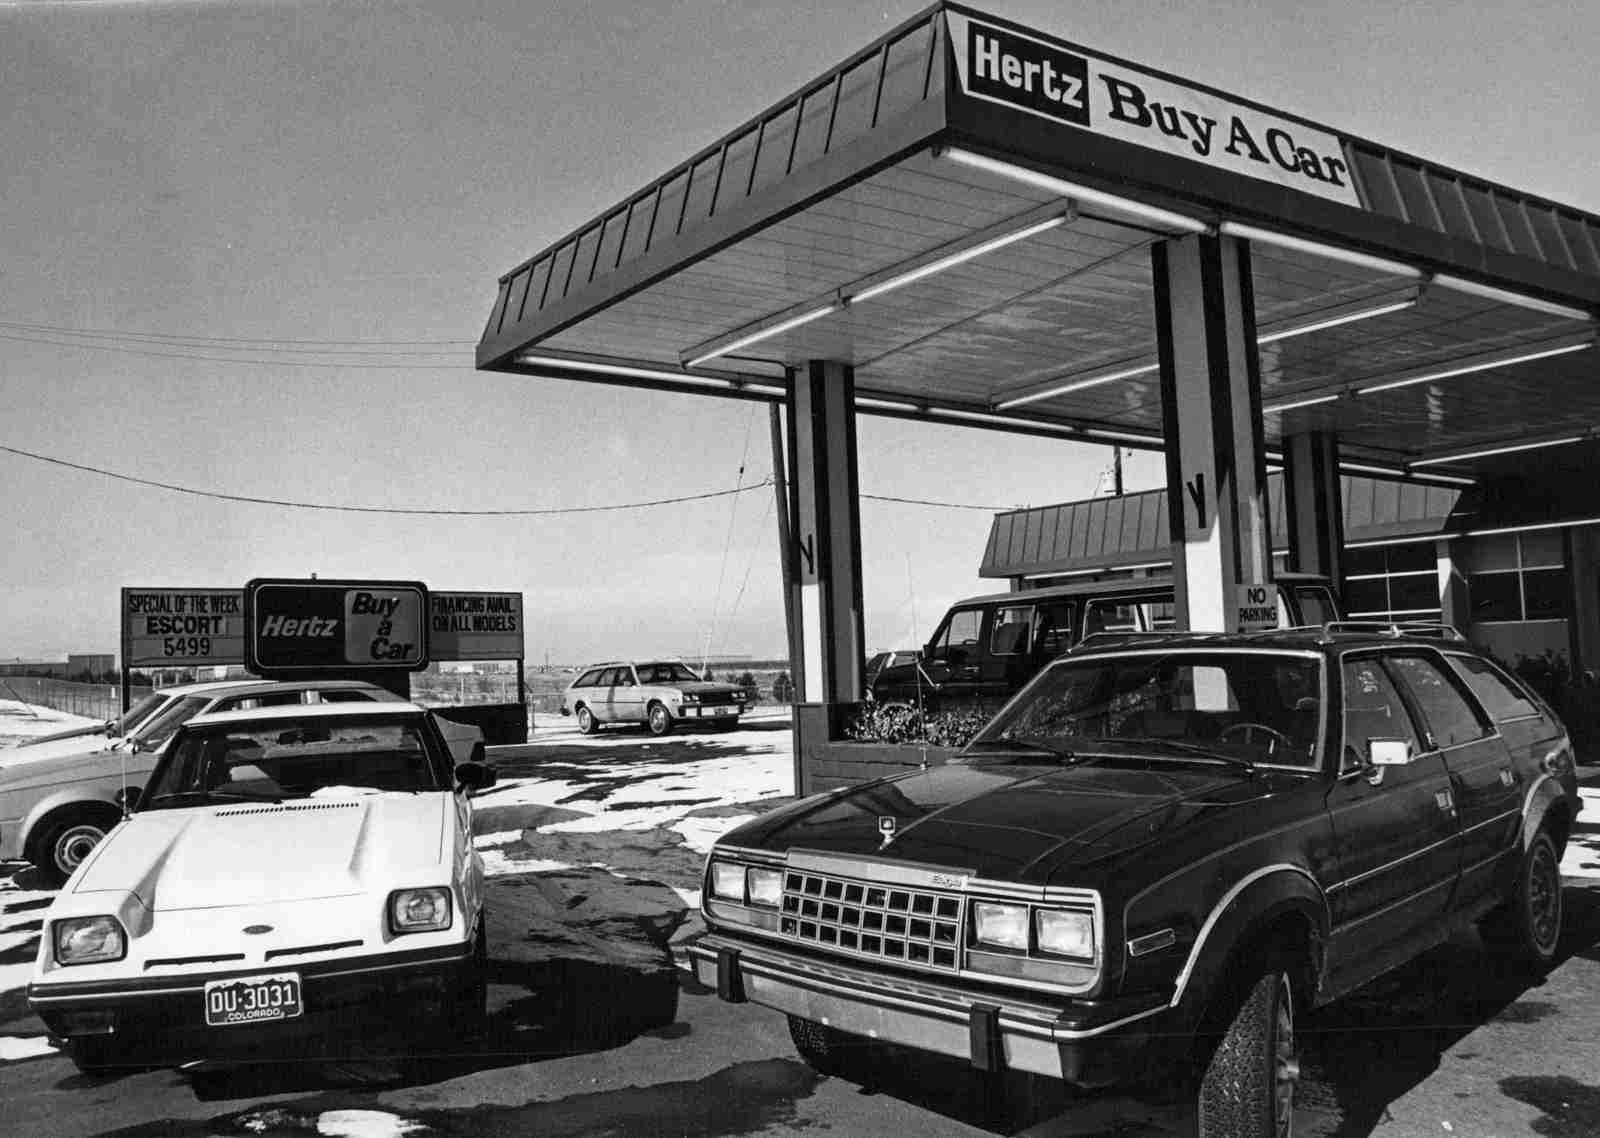 A Hertz car lot in 1982. (Photo by the Denver Post / Getty Images)